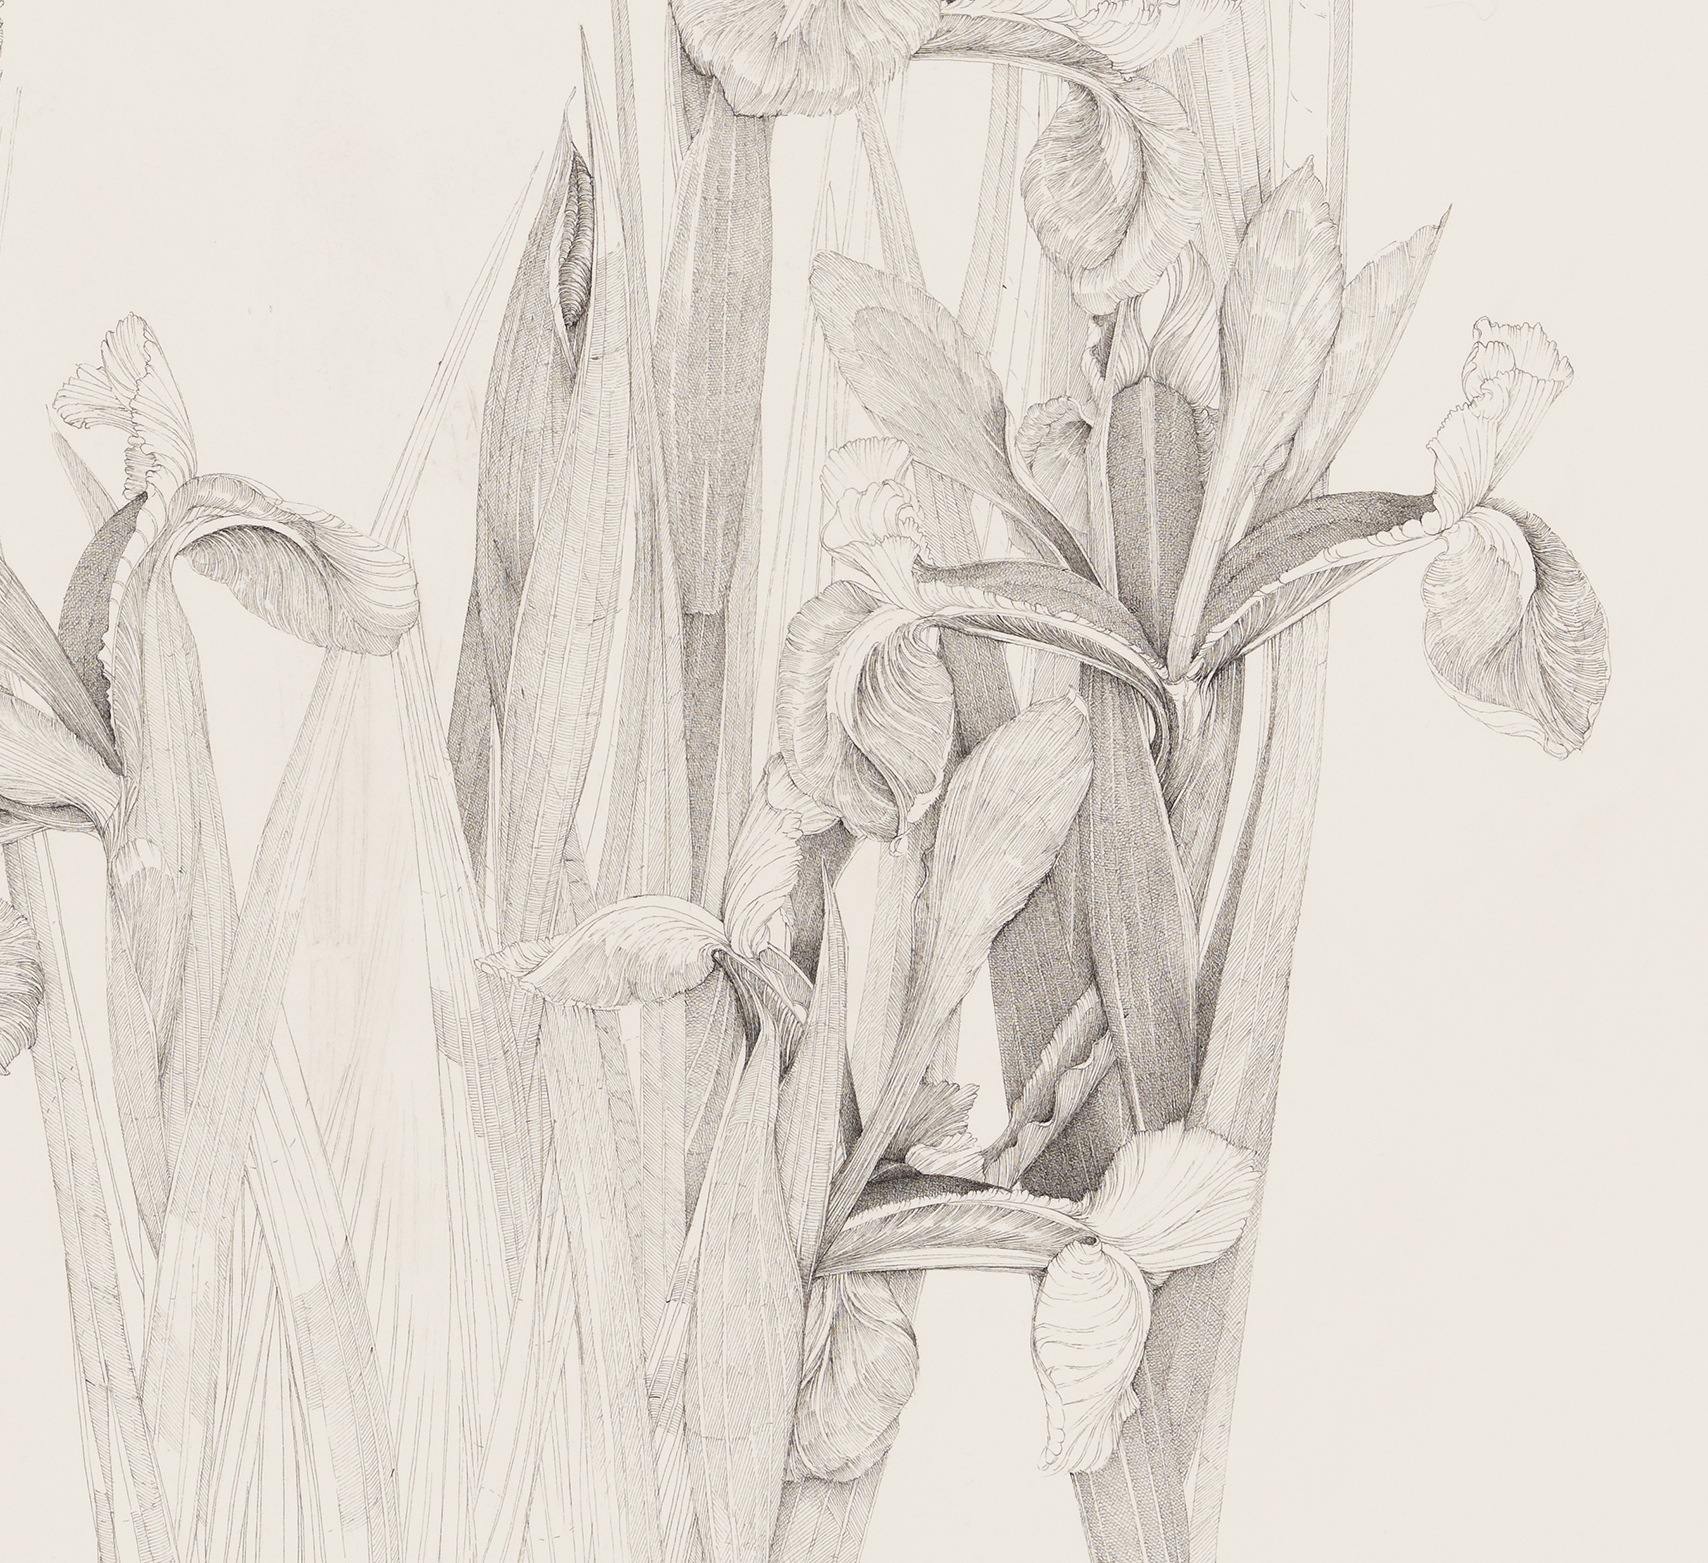 Charmian Johnson, not titled (detail), unknown date, ink and graphite on paper, 34 x 26 in. (85 x 65 cm) by